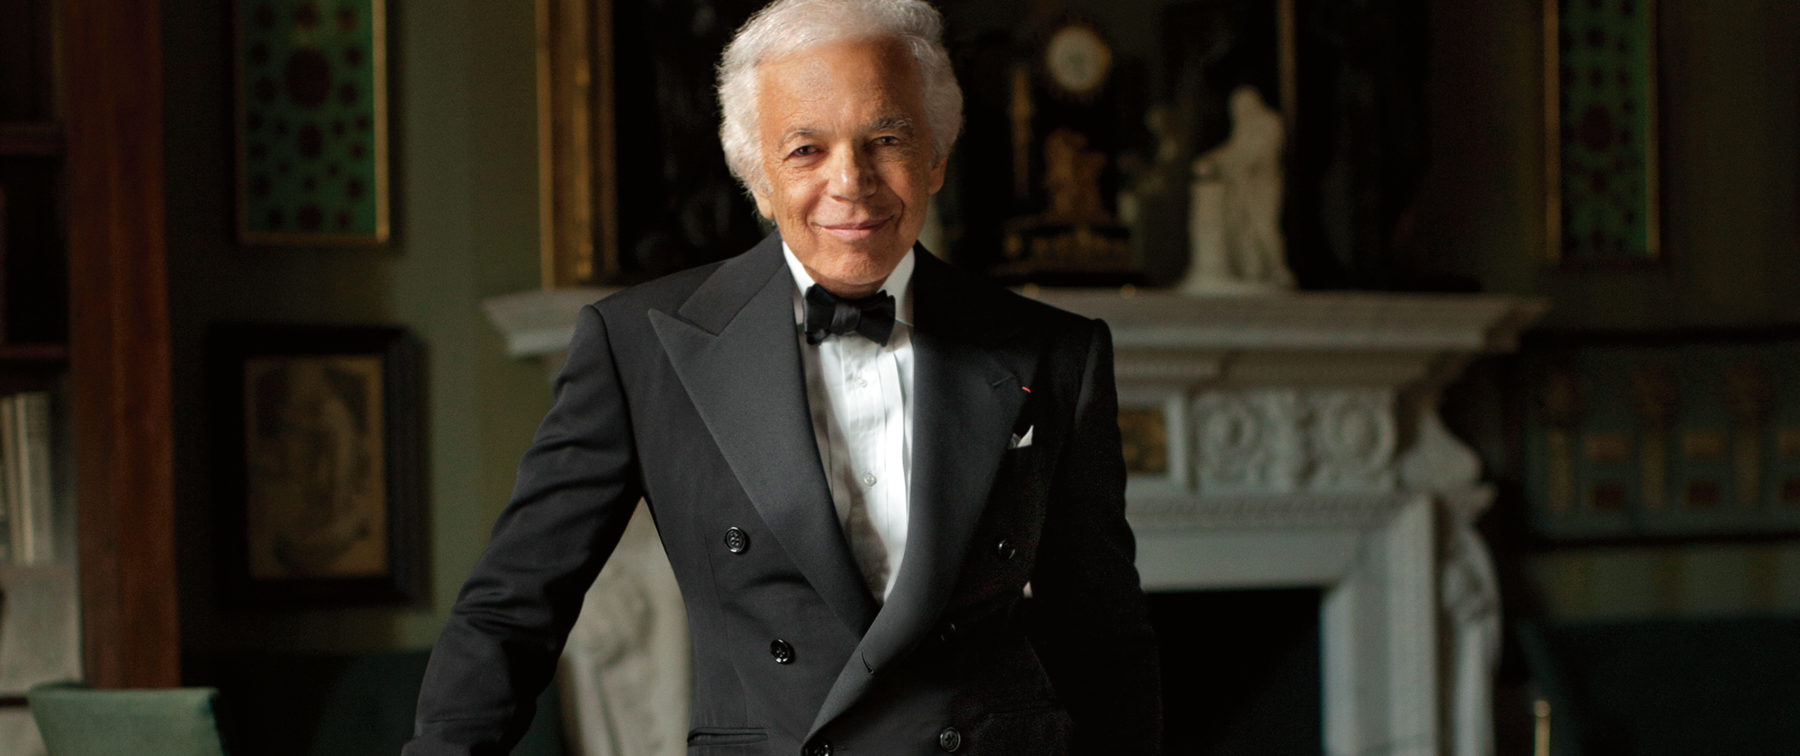 ralph lauren interview